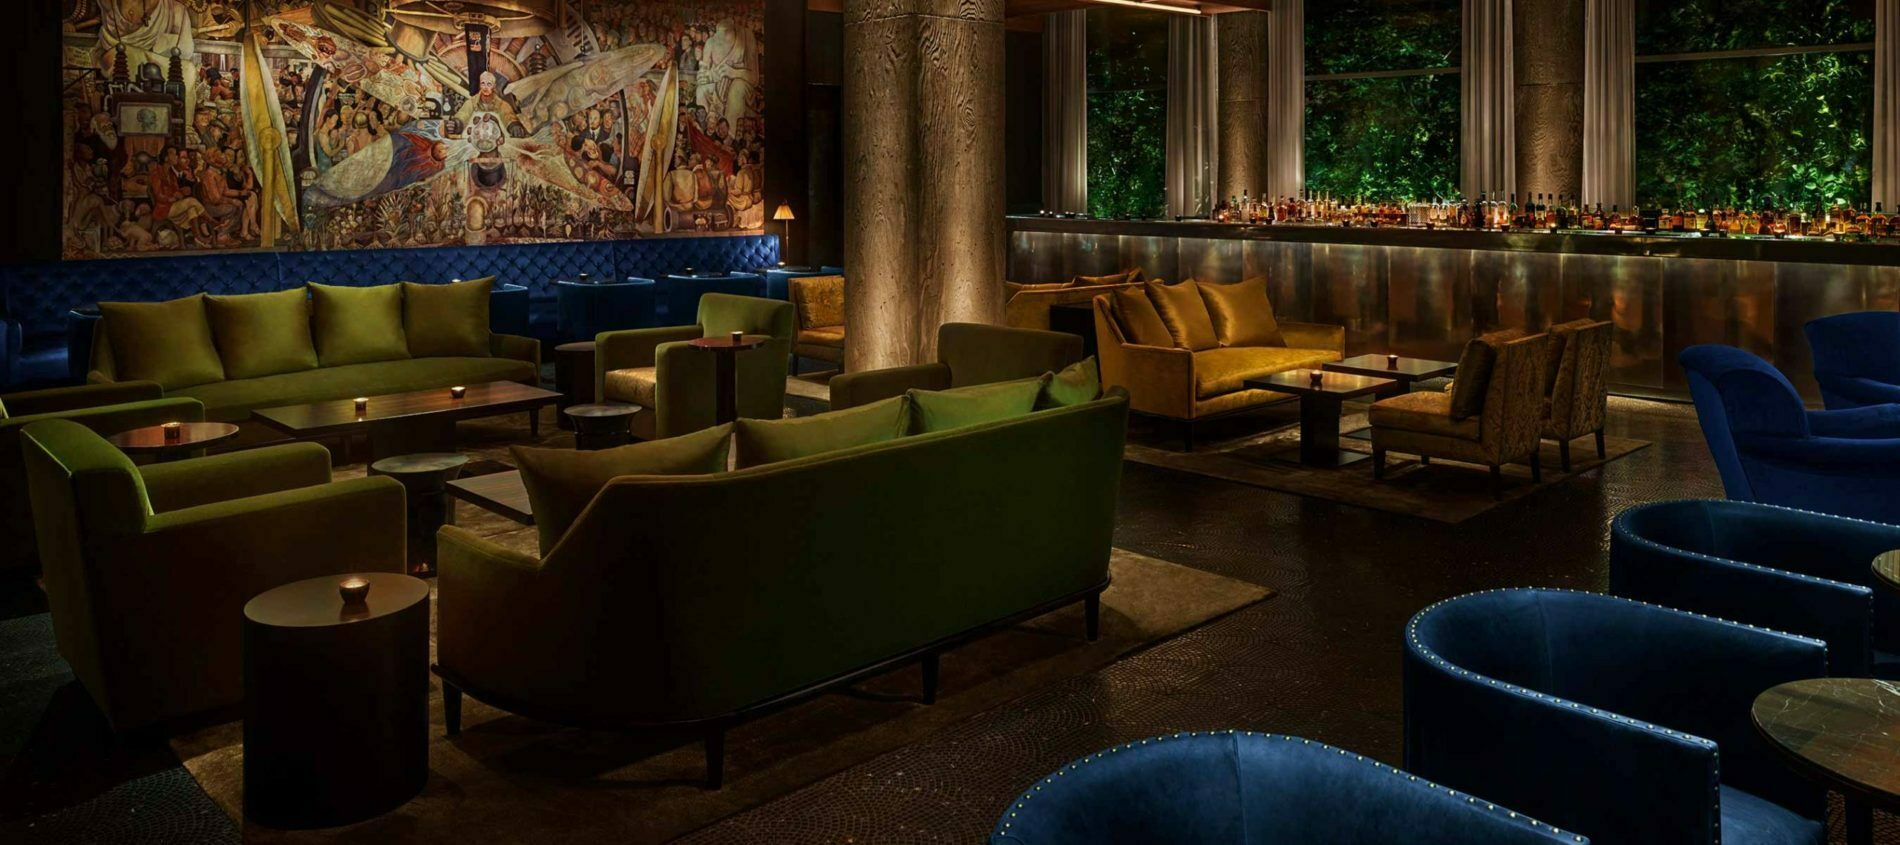 Diegos Bar in PUBLIC Hotel with green and yellow Sofas and Chairs